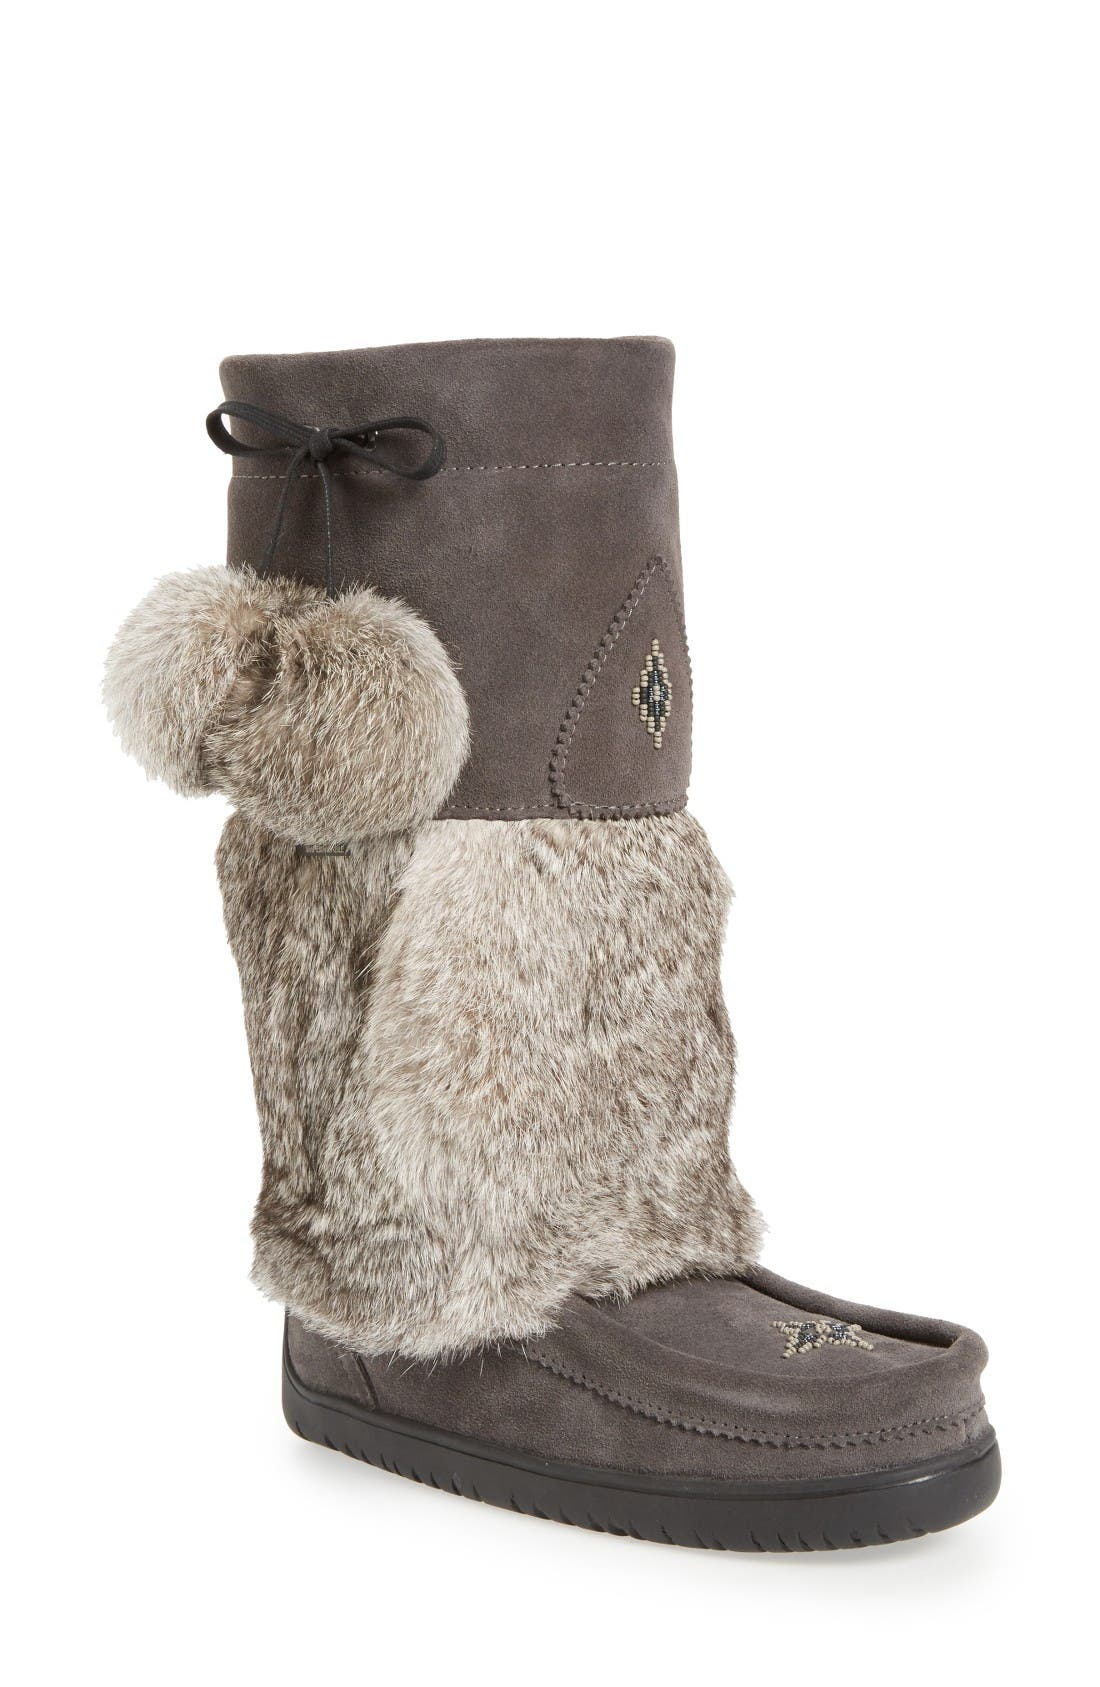 MANITOBAH MUKLUKS Snowy Owl Waterproof Genuine Fur Waterproof Boot in Charcoal Rabbit Fur Suede